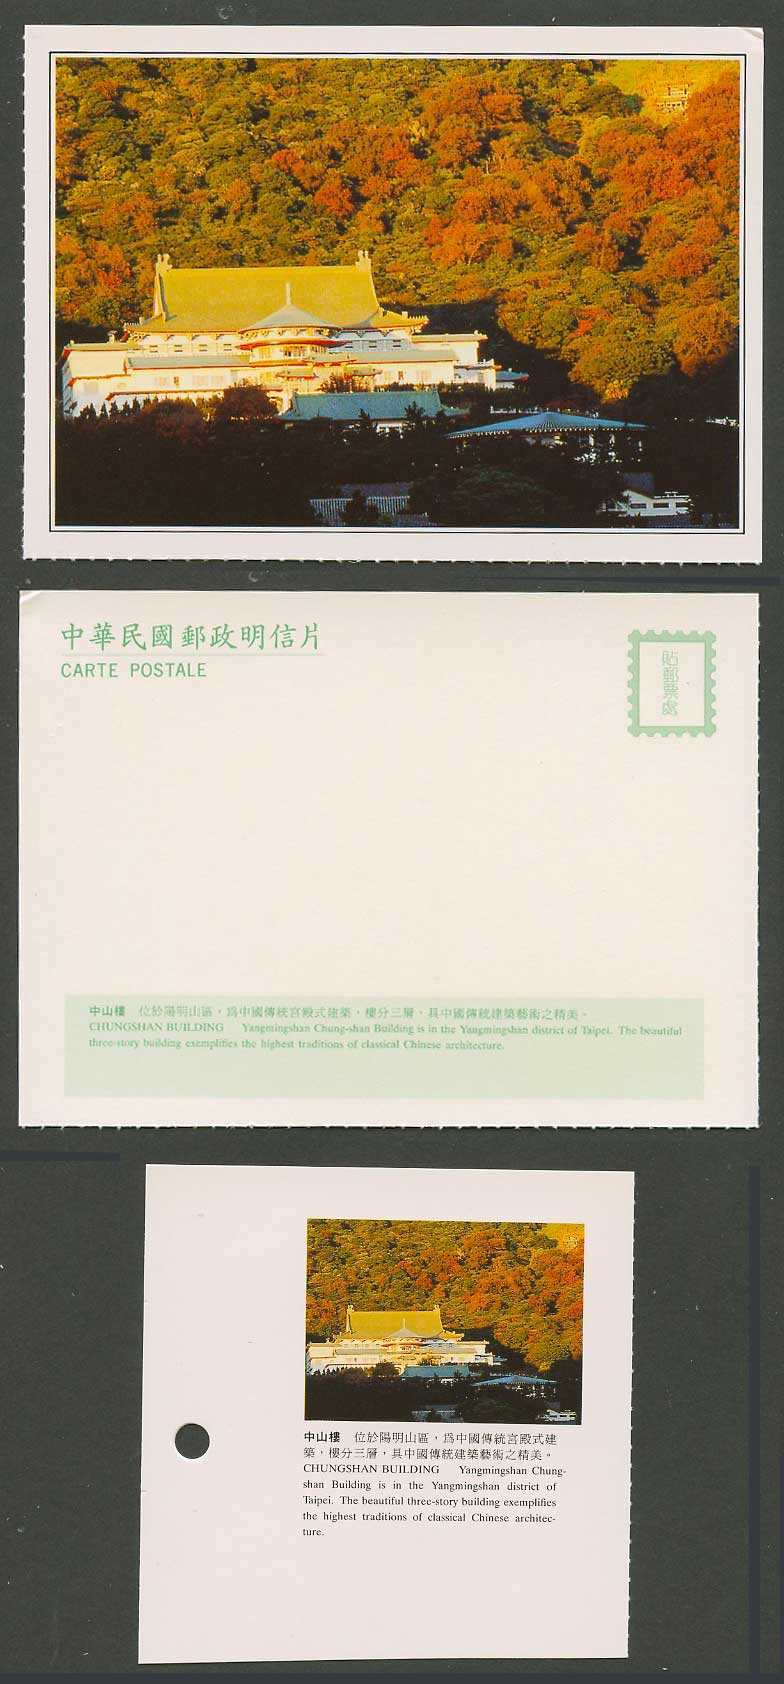 Taiwan Formosa China Postcard Chungshan Building in Yangmingshan Taipei 中山樓 陽明山區